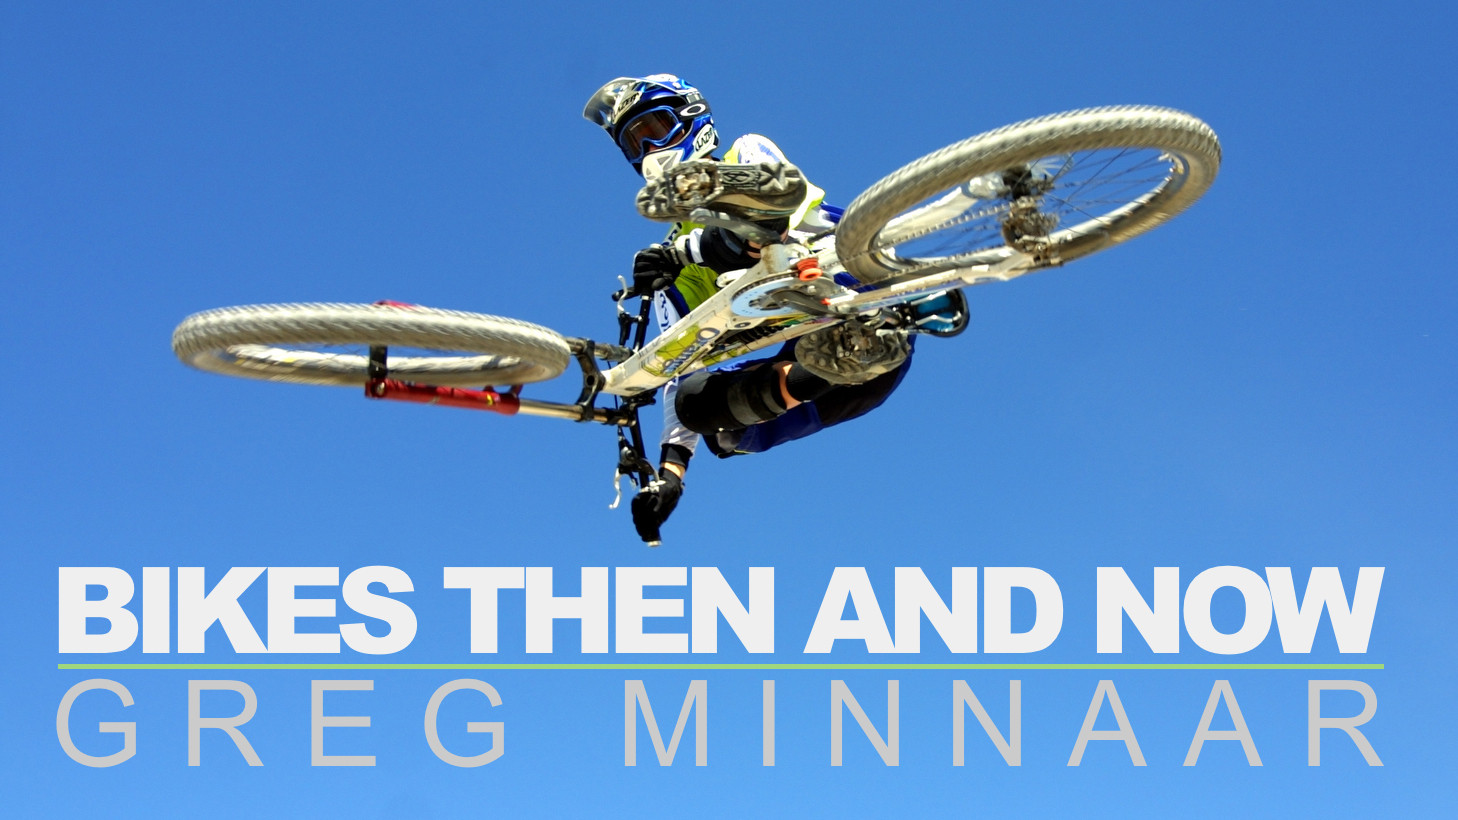 Bikes Then and Now: Greg Minnaar's Rides from 2001-2015 - Bikes Then and Now - Greg Minnaar - Mountain Biking Pictures - Vital MTB